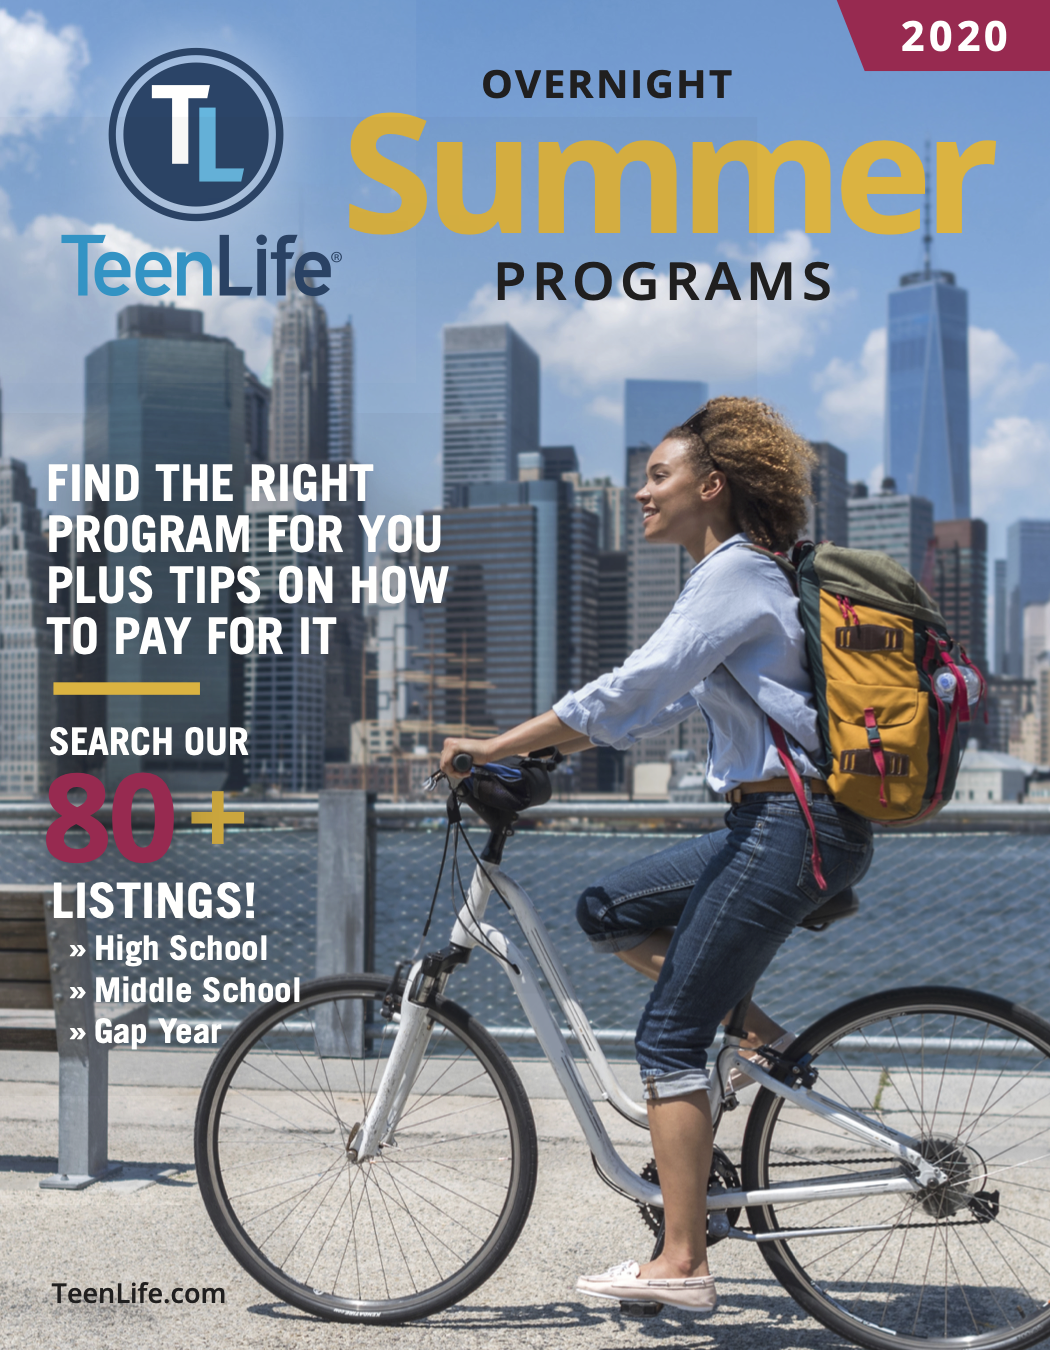 Guide to Overnight Summer Programs 2020-TeenLife